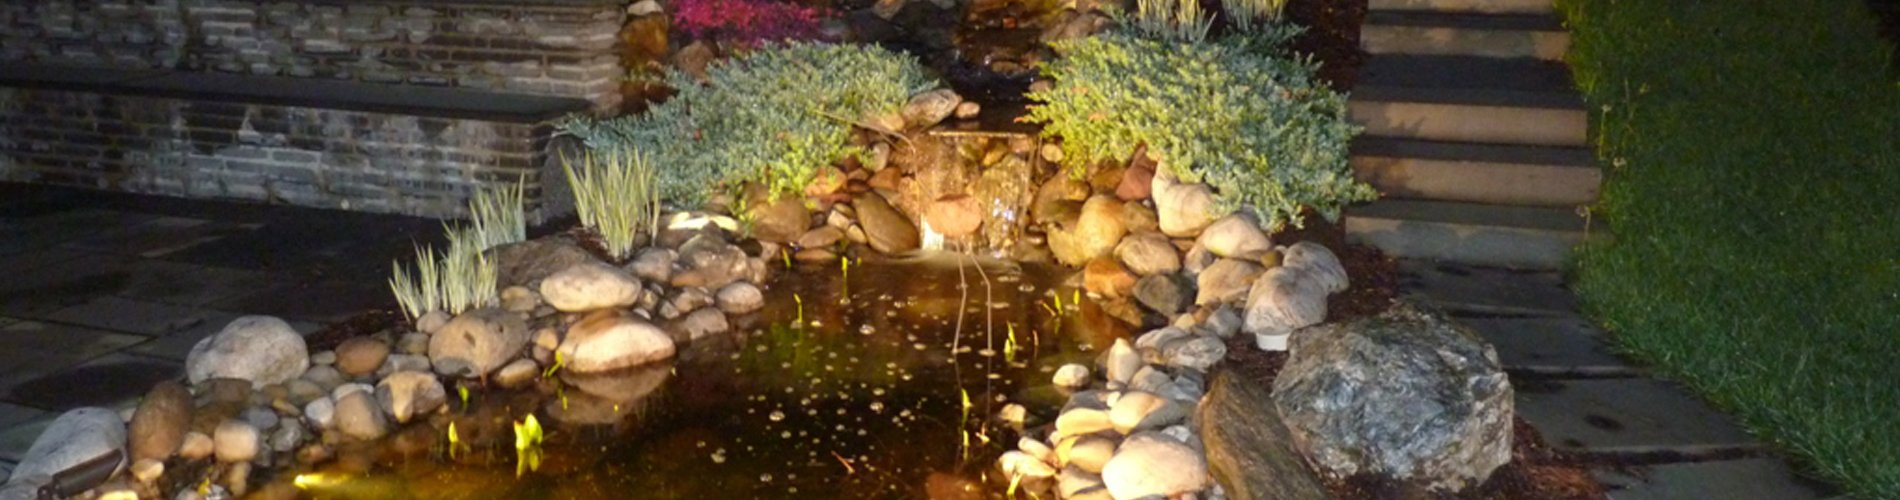 Night Lighting around Pond - Newtown Square PA